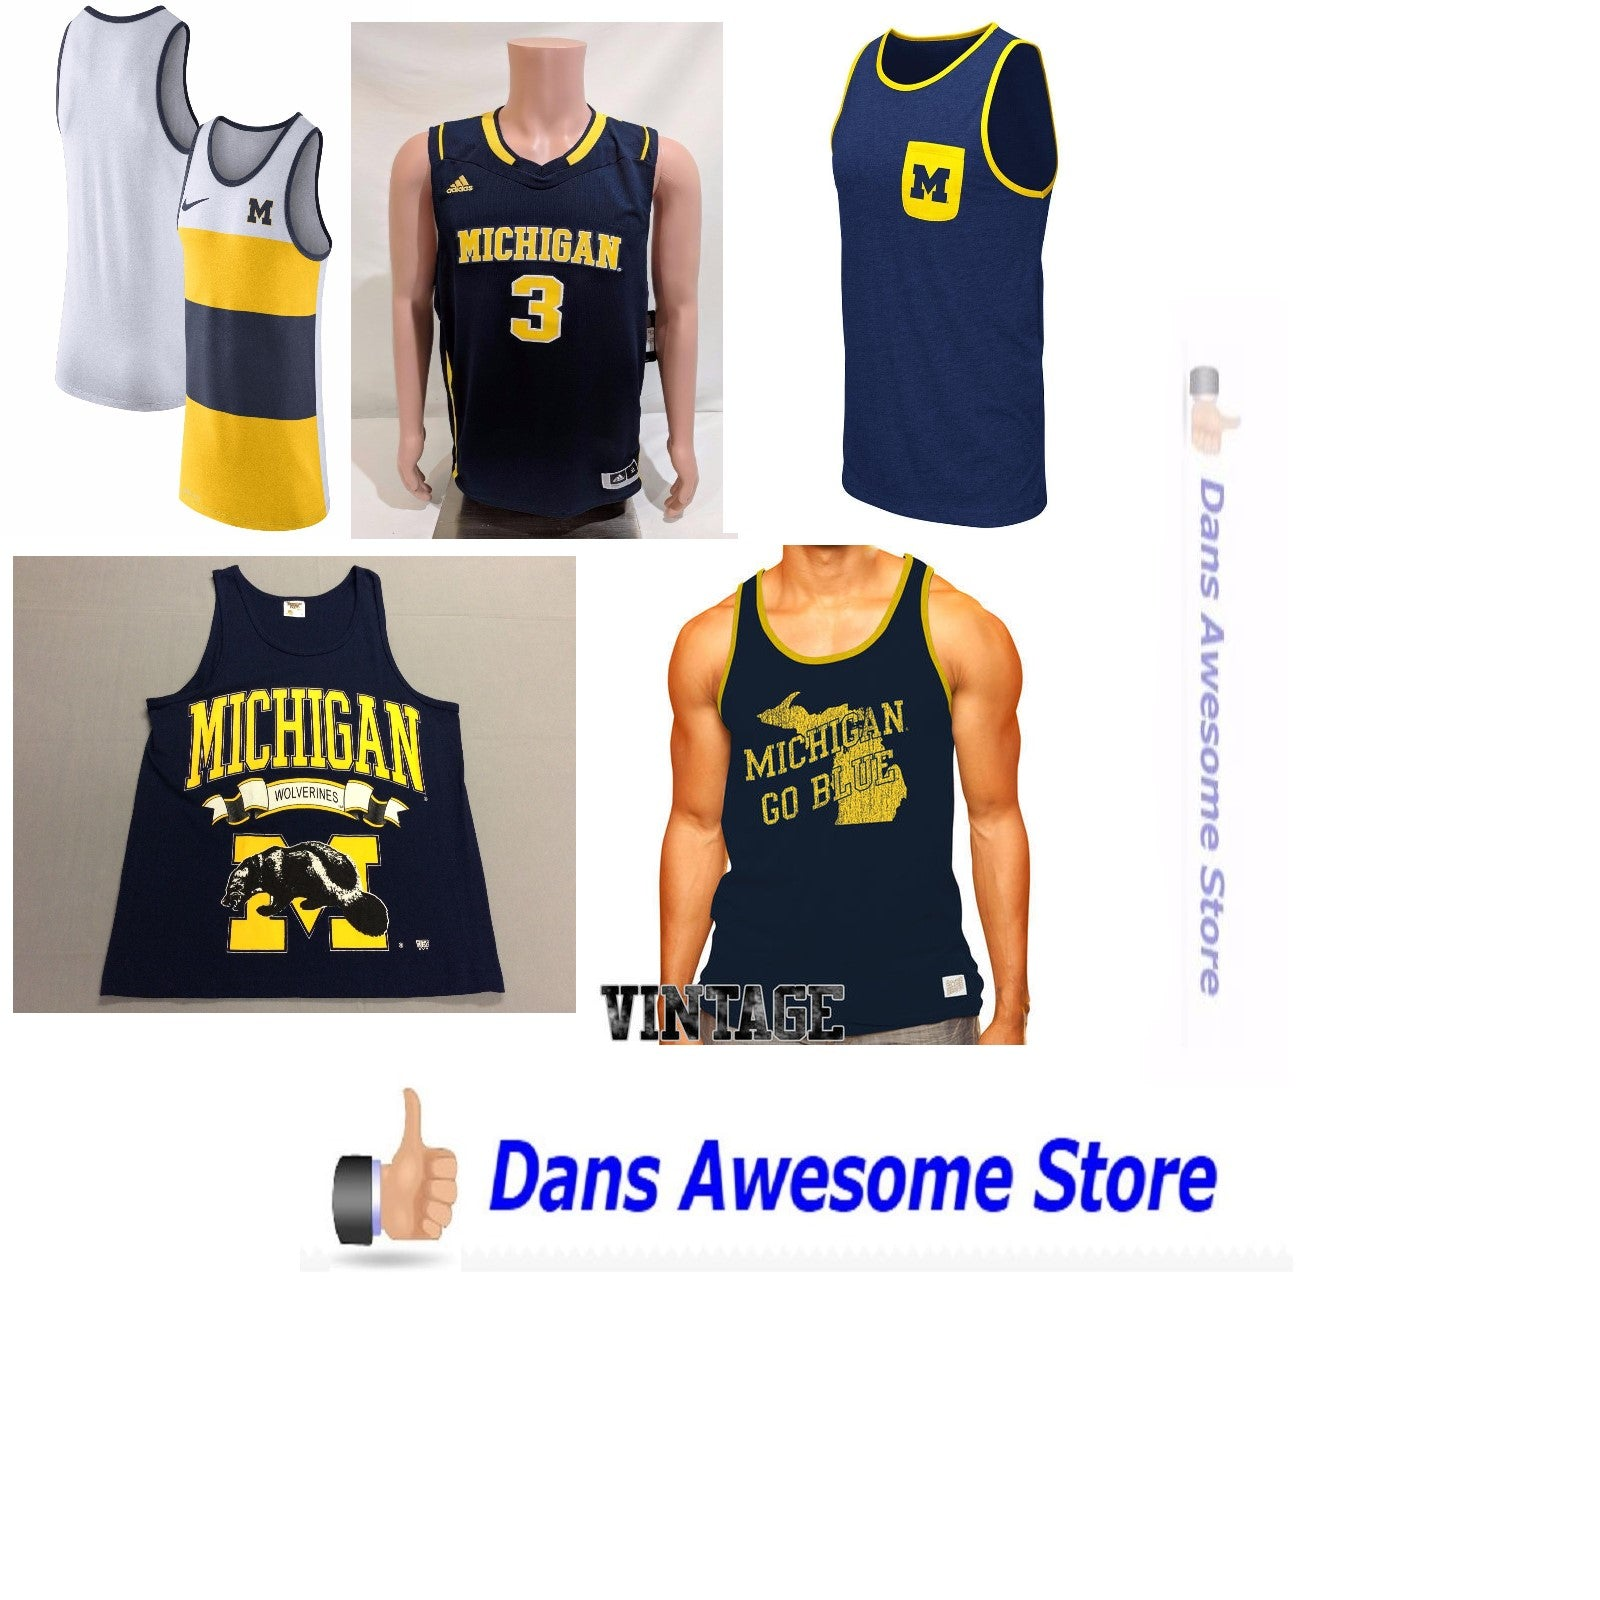 Michigan Wolverines Tank Tops - Dans Awesome Store